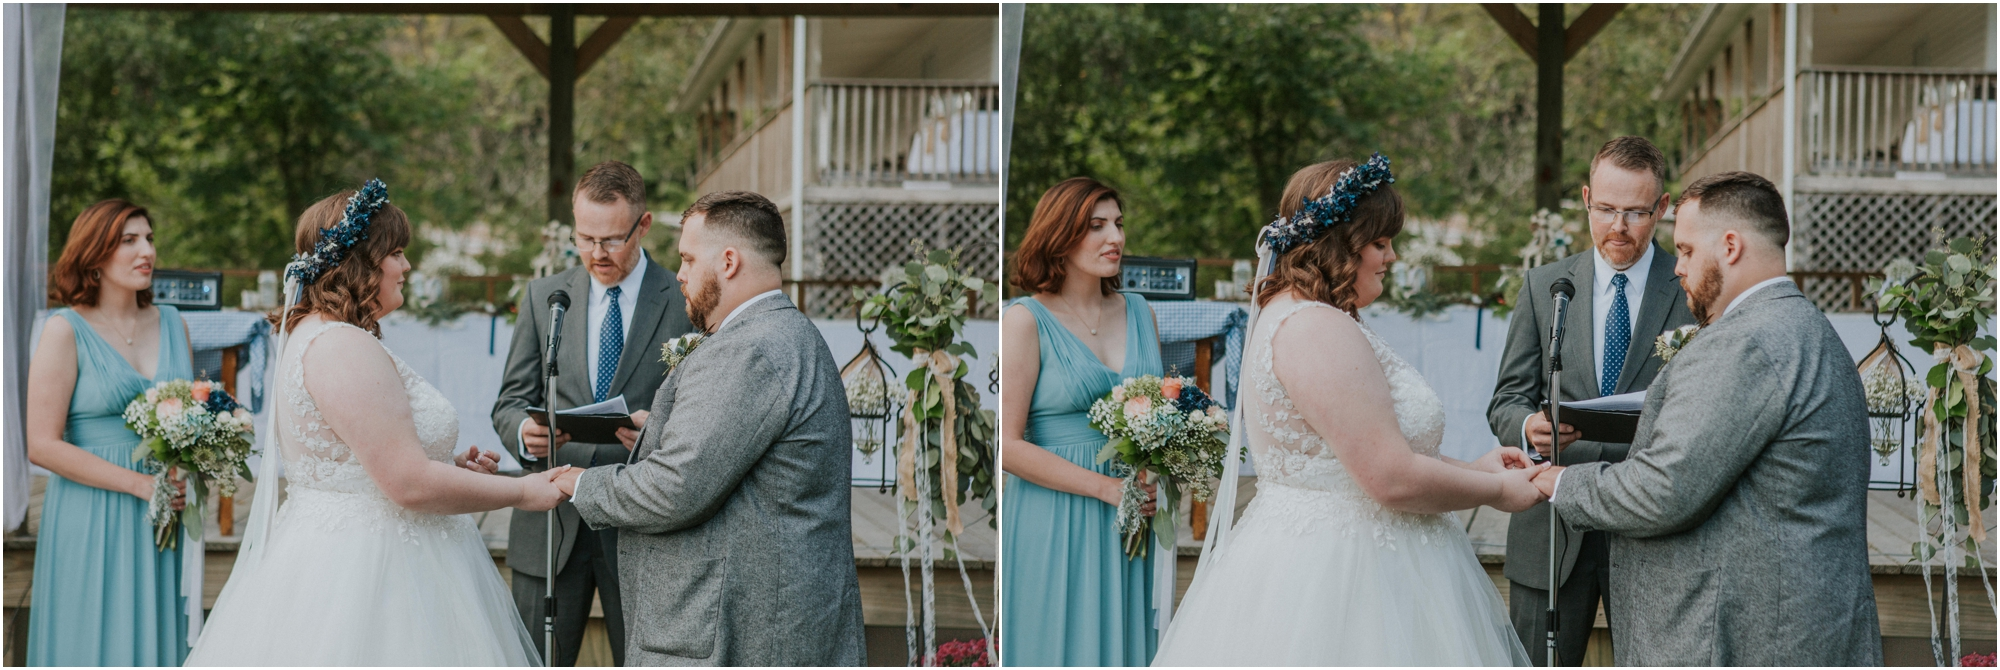 caryville-robbins-middle-tennessee-intimate-cozy-fall-navy-rustic-backyard-wedding_0084.jpg